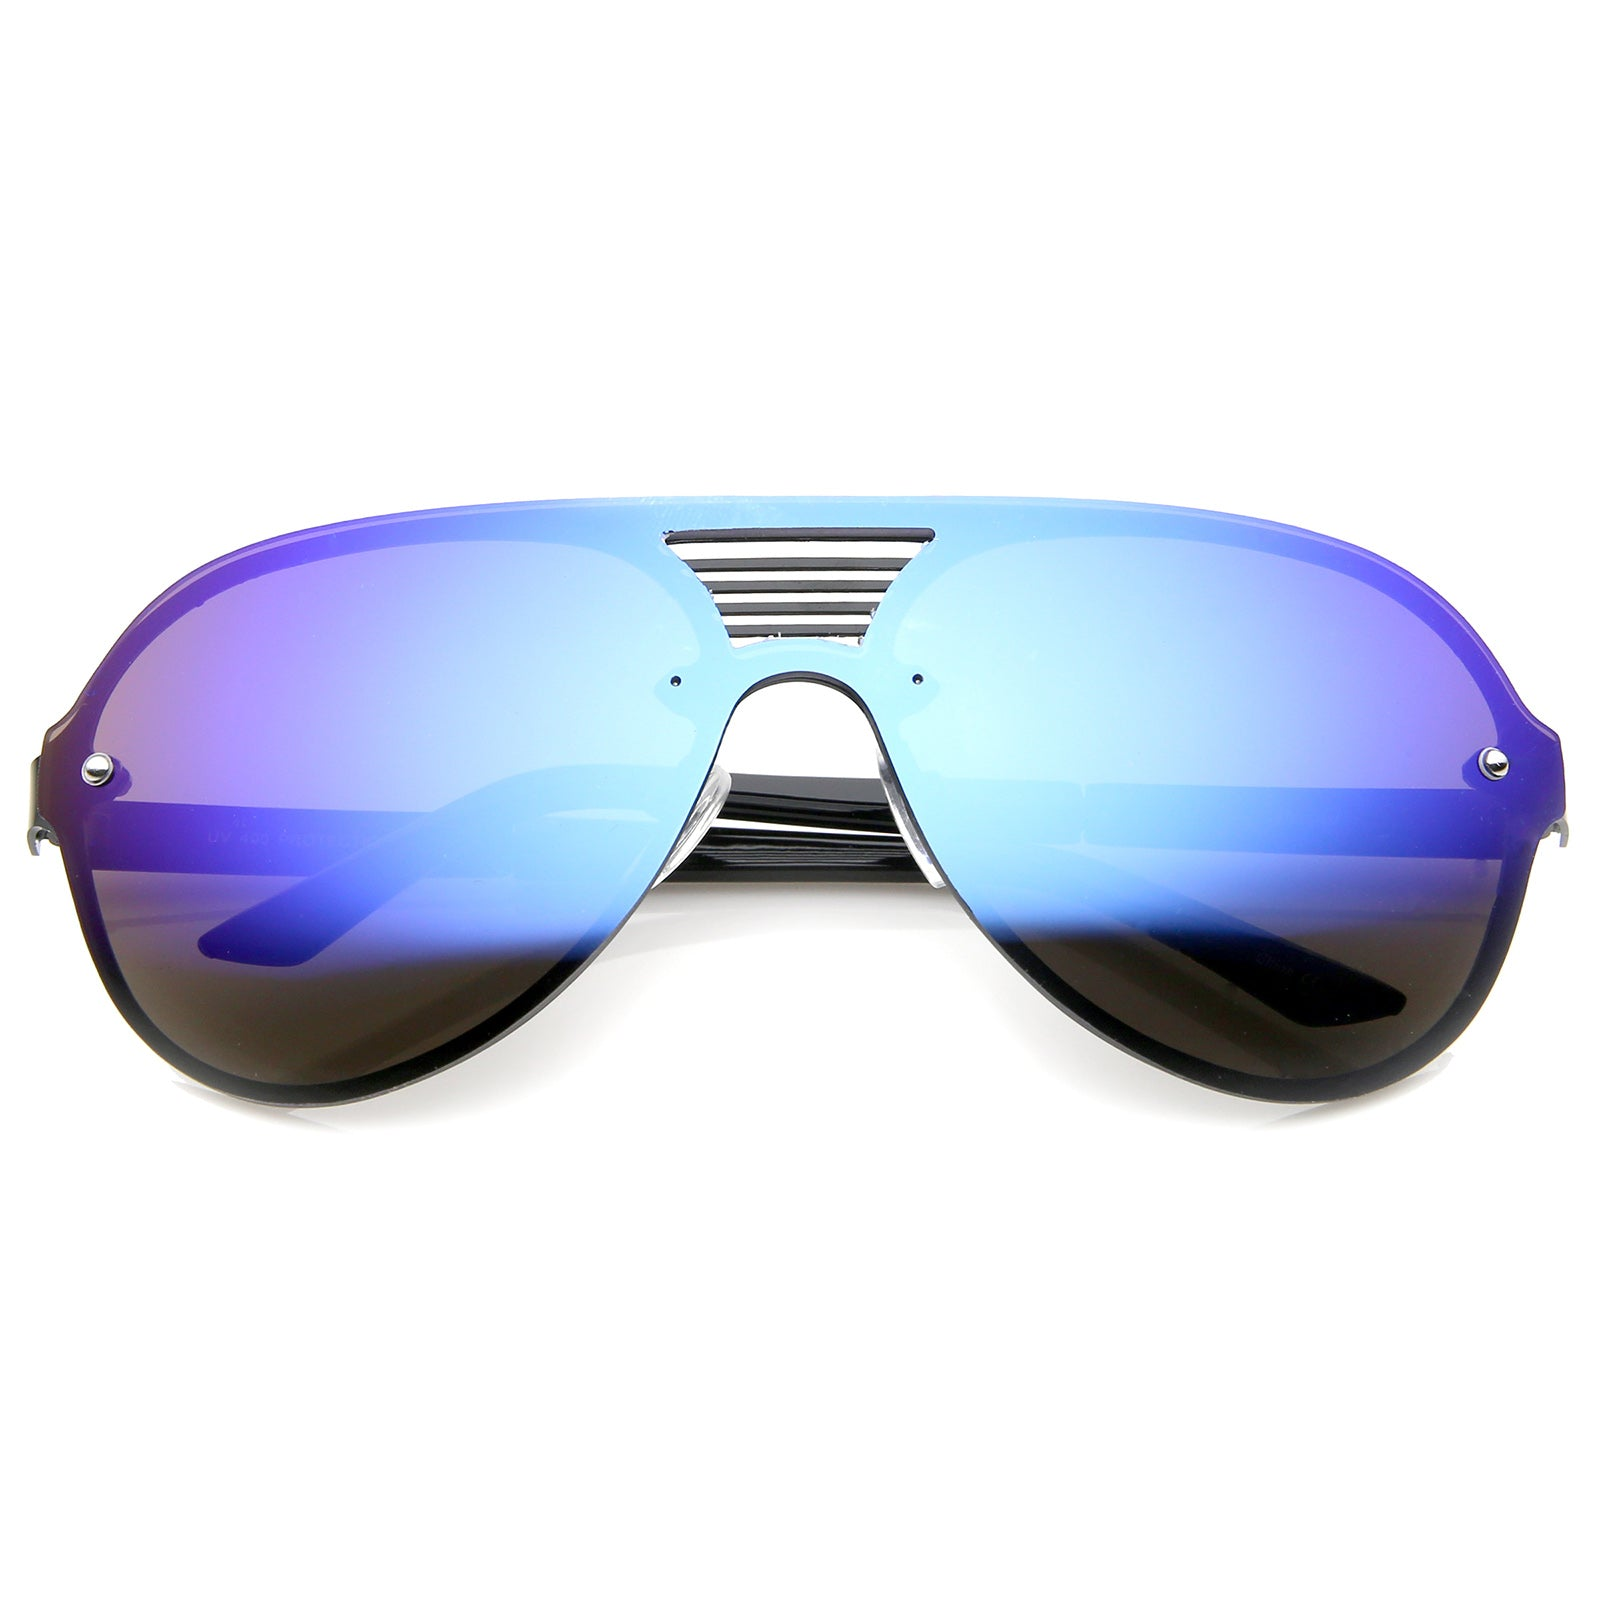 Rimless Flat Top Metal Temple Iridescent Mirror Lens Aviator Sunglasses 59mm - sunglass.la - 5